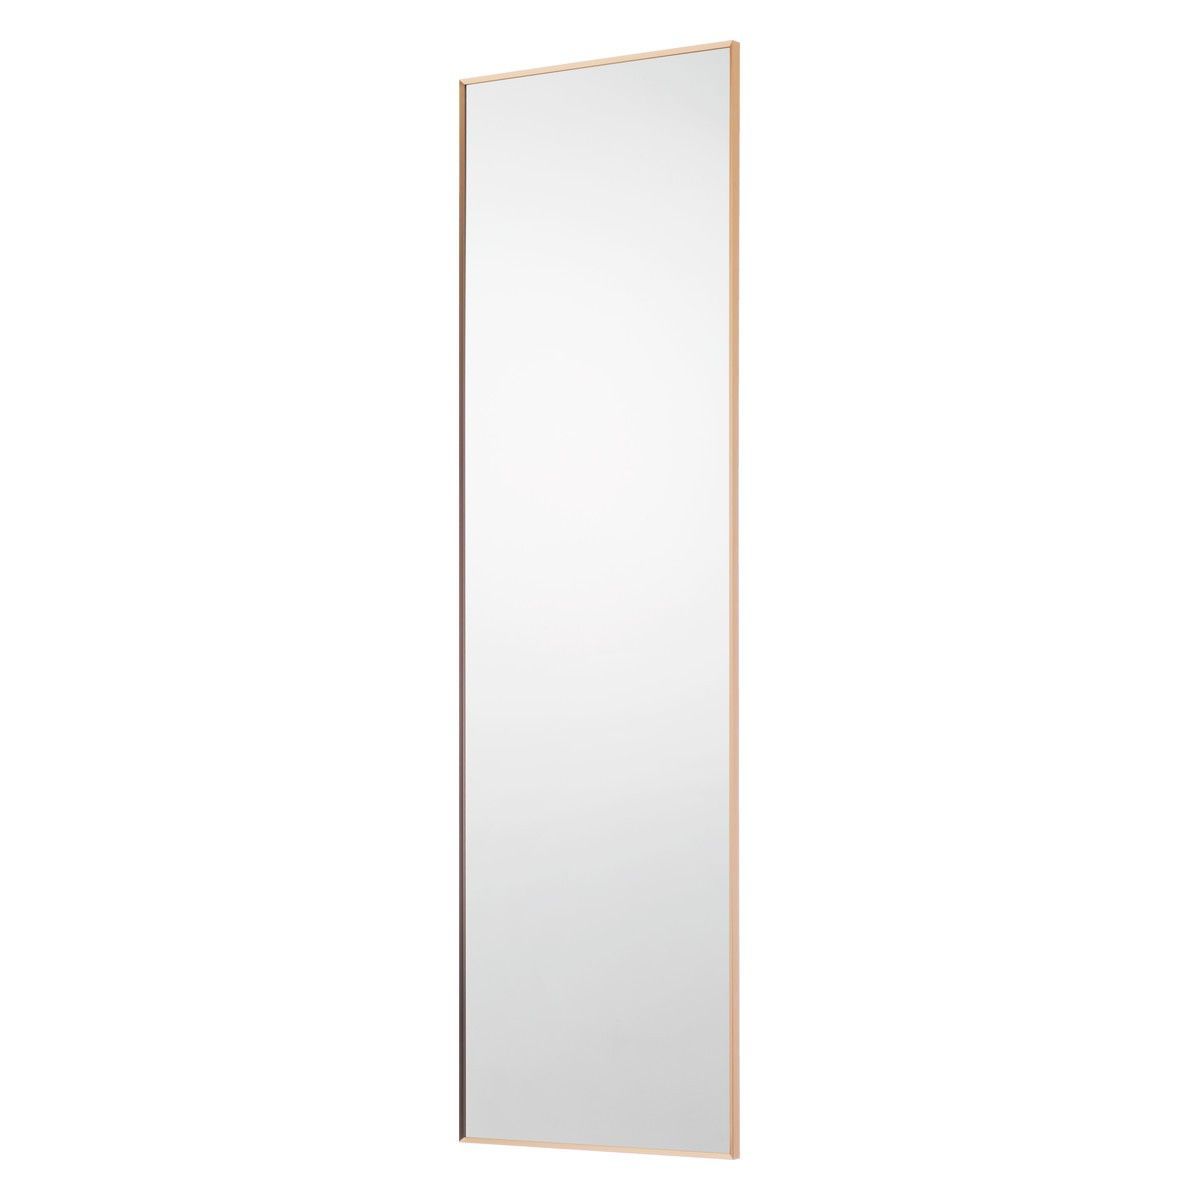 Best And Newest Kupari 40 X 140Cm Copper Full Length Wall Mirror In 2019 Intended For Full Body Wall Mirrors (View 5 of 20)